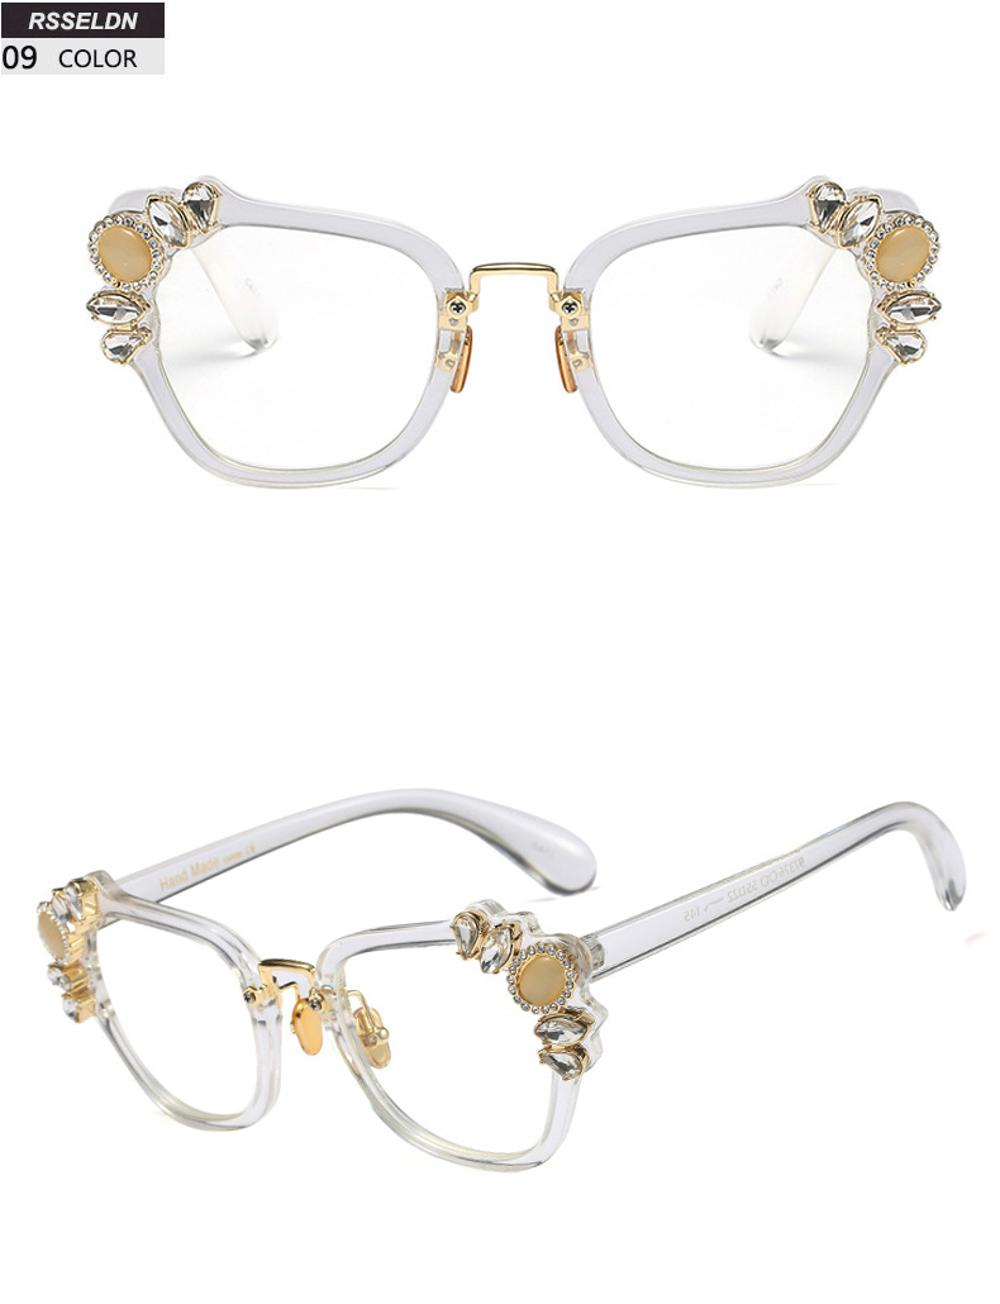 572f33480e04 Boyarn Transparent Eyeglasses Frames Women Cat Eye Glasses Frame Luxury  crystal Rhinestone Clear Lens Vintage Eyeglass